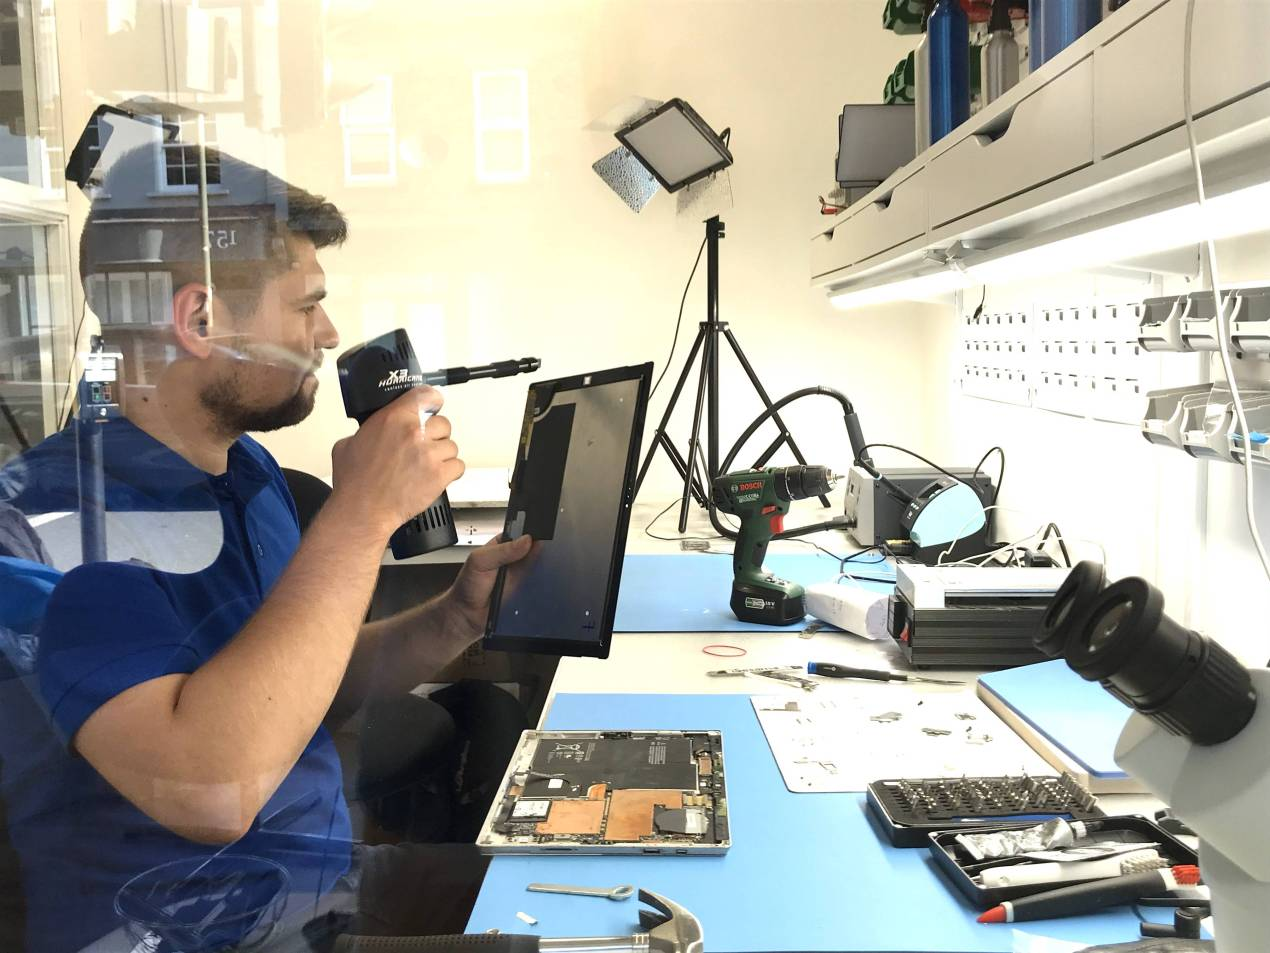 Daniel is making sure that the new screen he is going to fit, has the camera lens clean from both sides of the replacement part of the surface pro 3